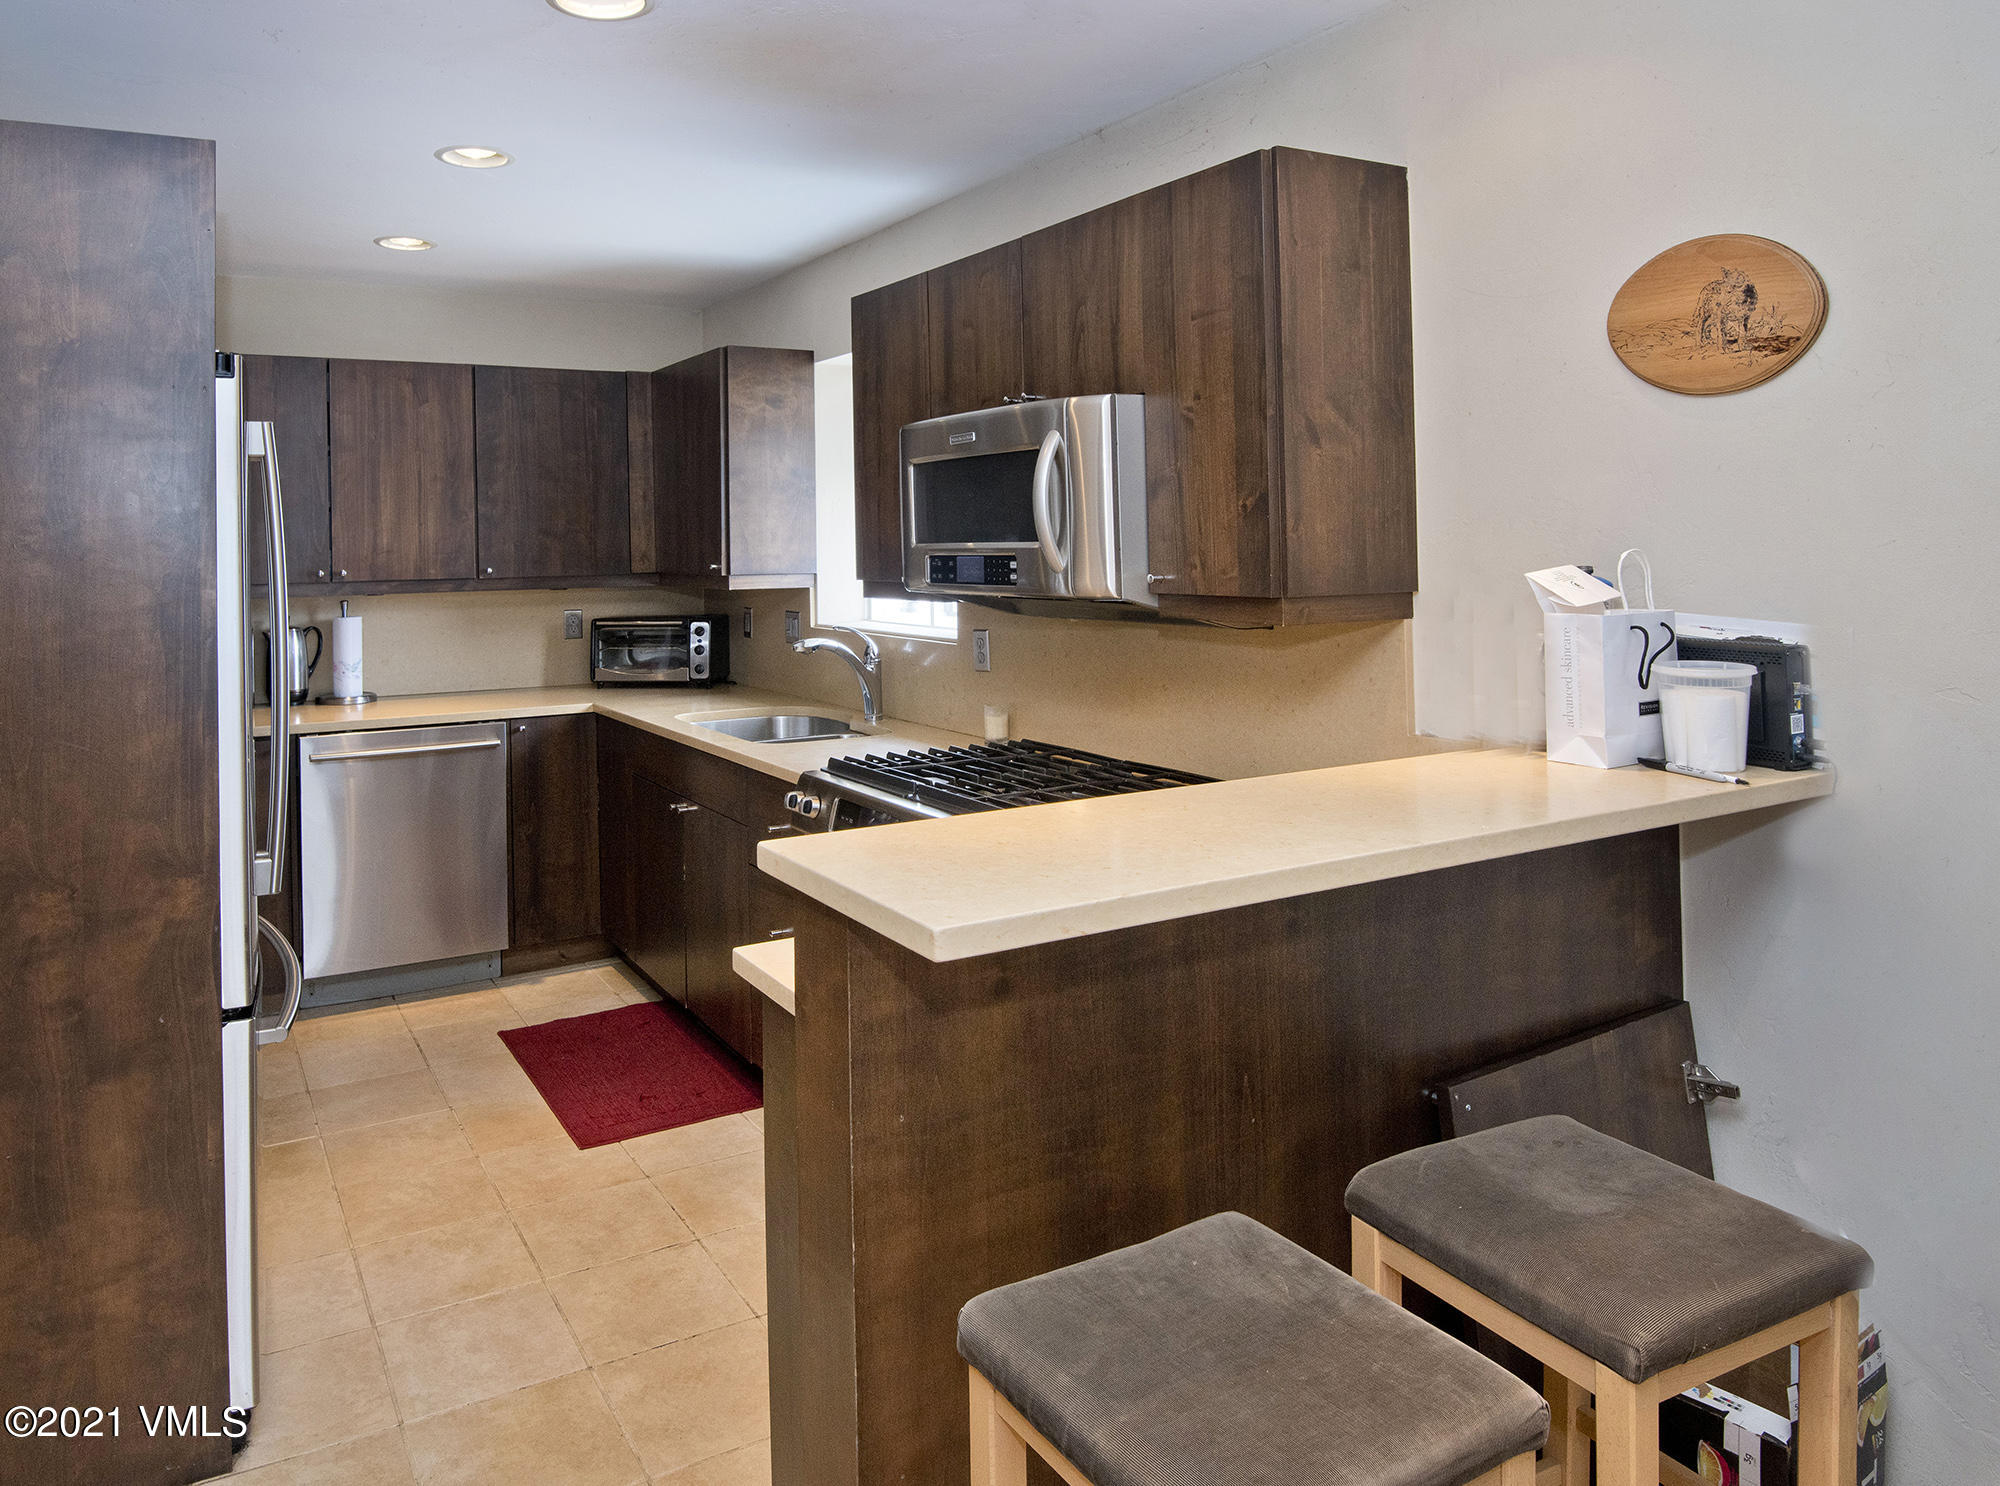 An end unit mostly remodeled with the ideal floorplan located in Homestead!  Upstairs bedrooms both en-suite, custom closets, and vaulted ceilings allowing for extra light and a great feel.  Basement is fully finished offering the 3rd bedroom area plus an additional living space & galley kitchen; currently used as a studio style lock-off (shared entrance). Fully remodeled kitchen with stainless appliances, newer counter tops and cabinetry. Tons of storage space.Owner has used as a rental property for years with no vacancy. Phenomenal investment opportunity with no short-term rental restrictions. The best location just steps to hiking trails, neighborhood parks, and the recently renovated Homestead Court Club. Walk to Edwards/Brewery/Post office.Accepting offers until Tuesday 4/20 6pm MDT. Seller will respond by Wednesday 4/21 6pm MDT.